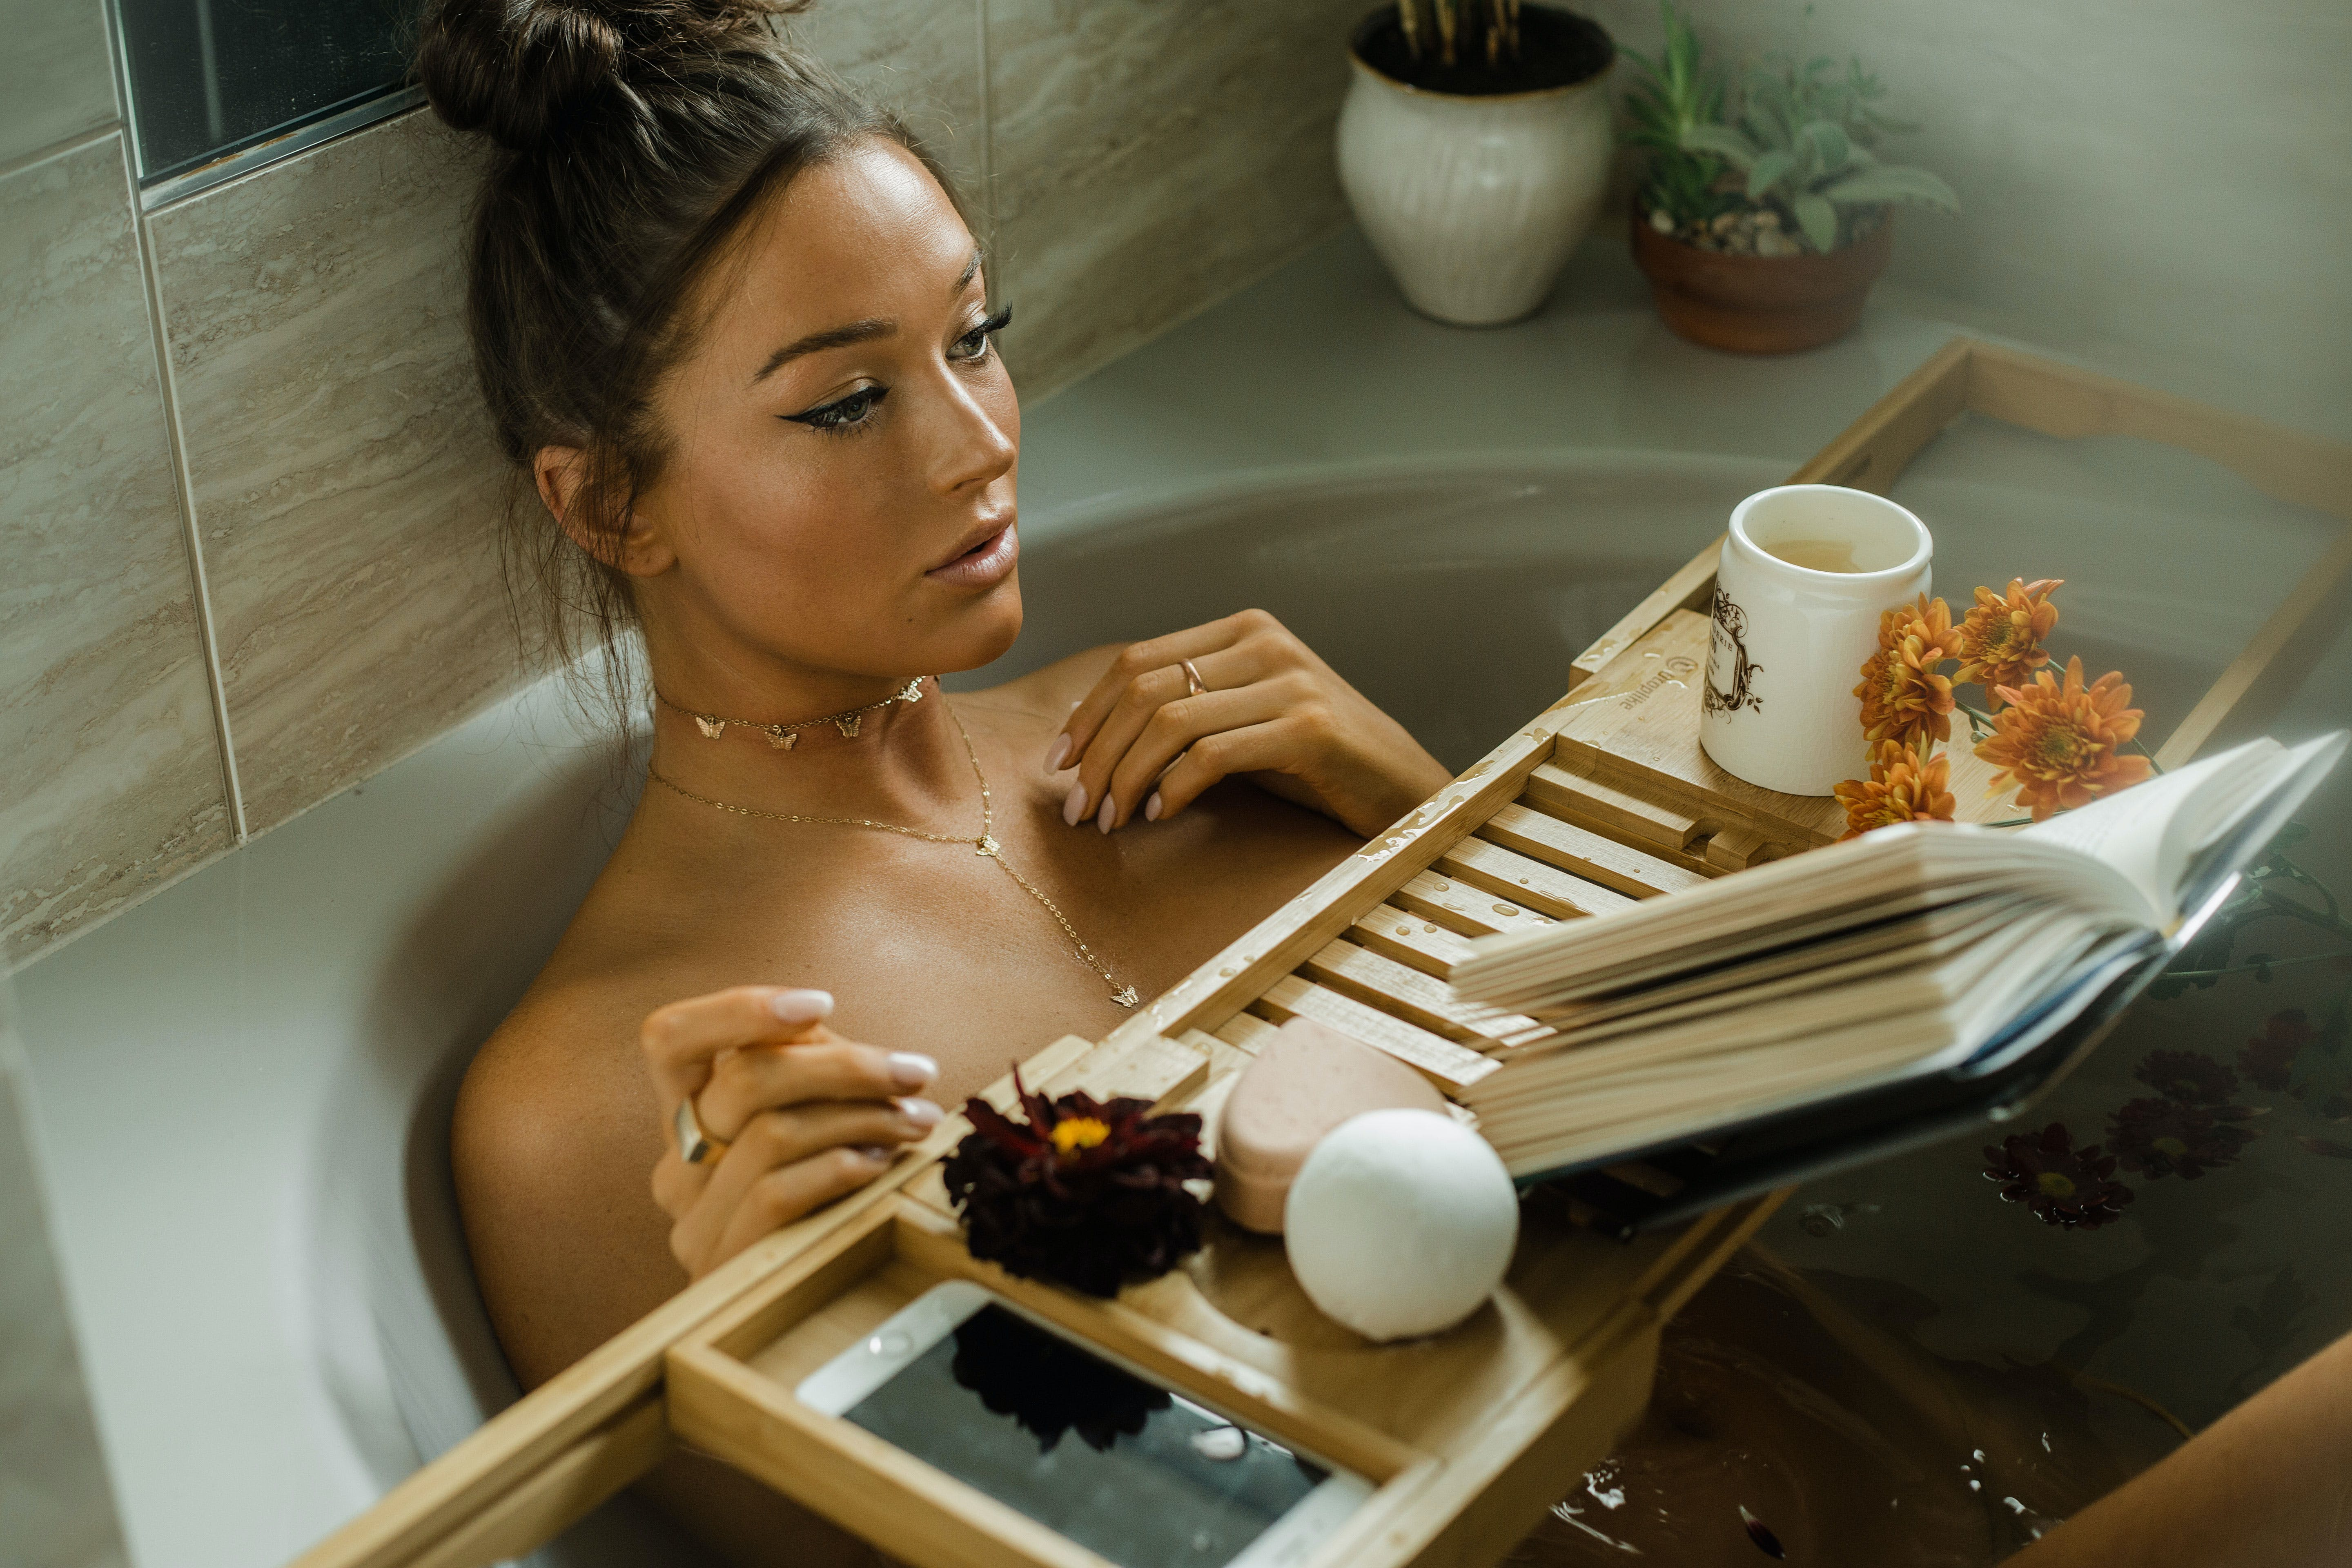 A woman relaxes in the tub with the best CBD bath bombs